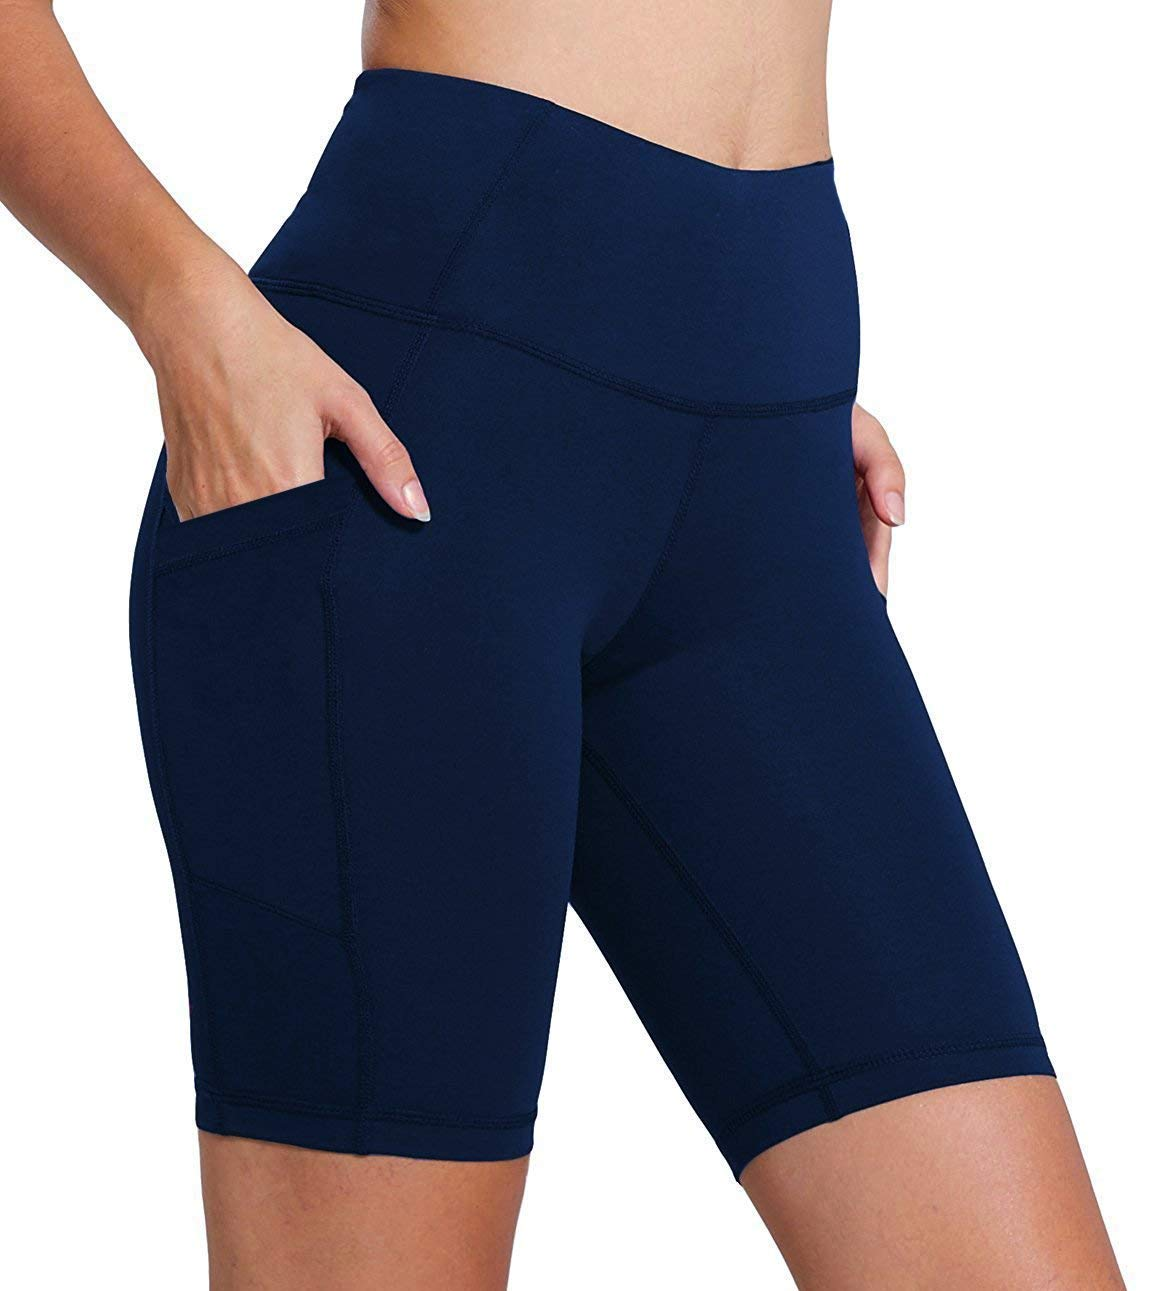 FIRM ABS Women's High Waist Yoga Shorts Compression Workout Shorts with Pocket Navy M